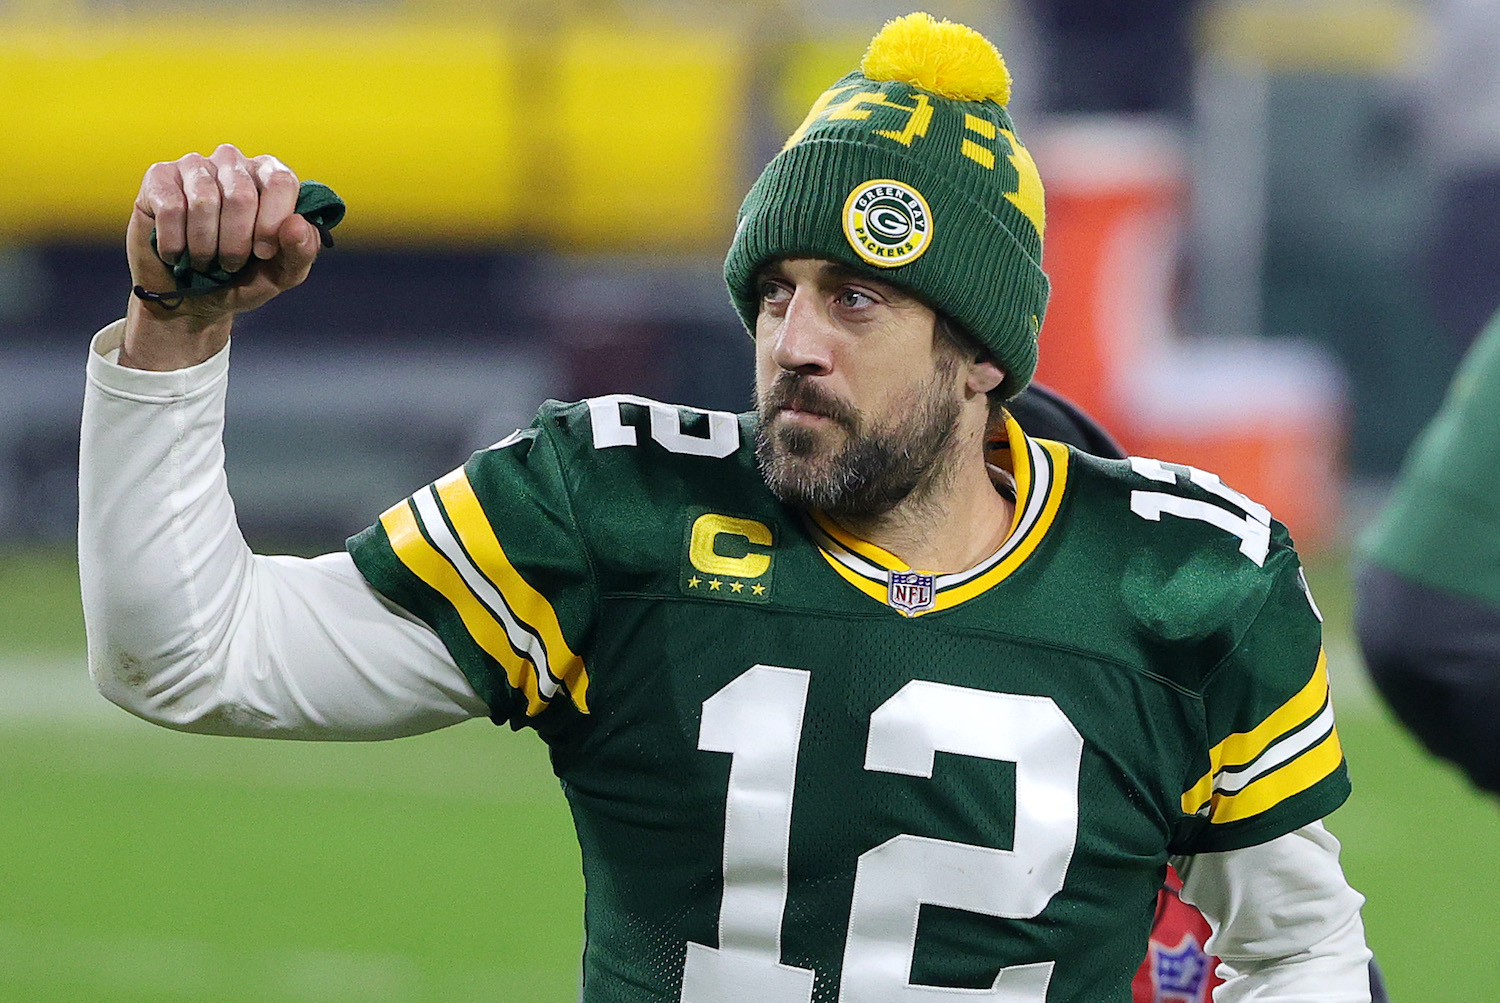 GREEN BAY, WISCONSIN - JANUARY 16: Aaron Rodgers #12 of the Green Bay Packers celebrates defeating the Los Angeles Rams 32-18 in the NFC Divisional Playoff game at Lambeau Field on January 16, 2021 in Green Bay, Wisconsin. (Photo by Stacy Revere/Getty Images)